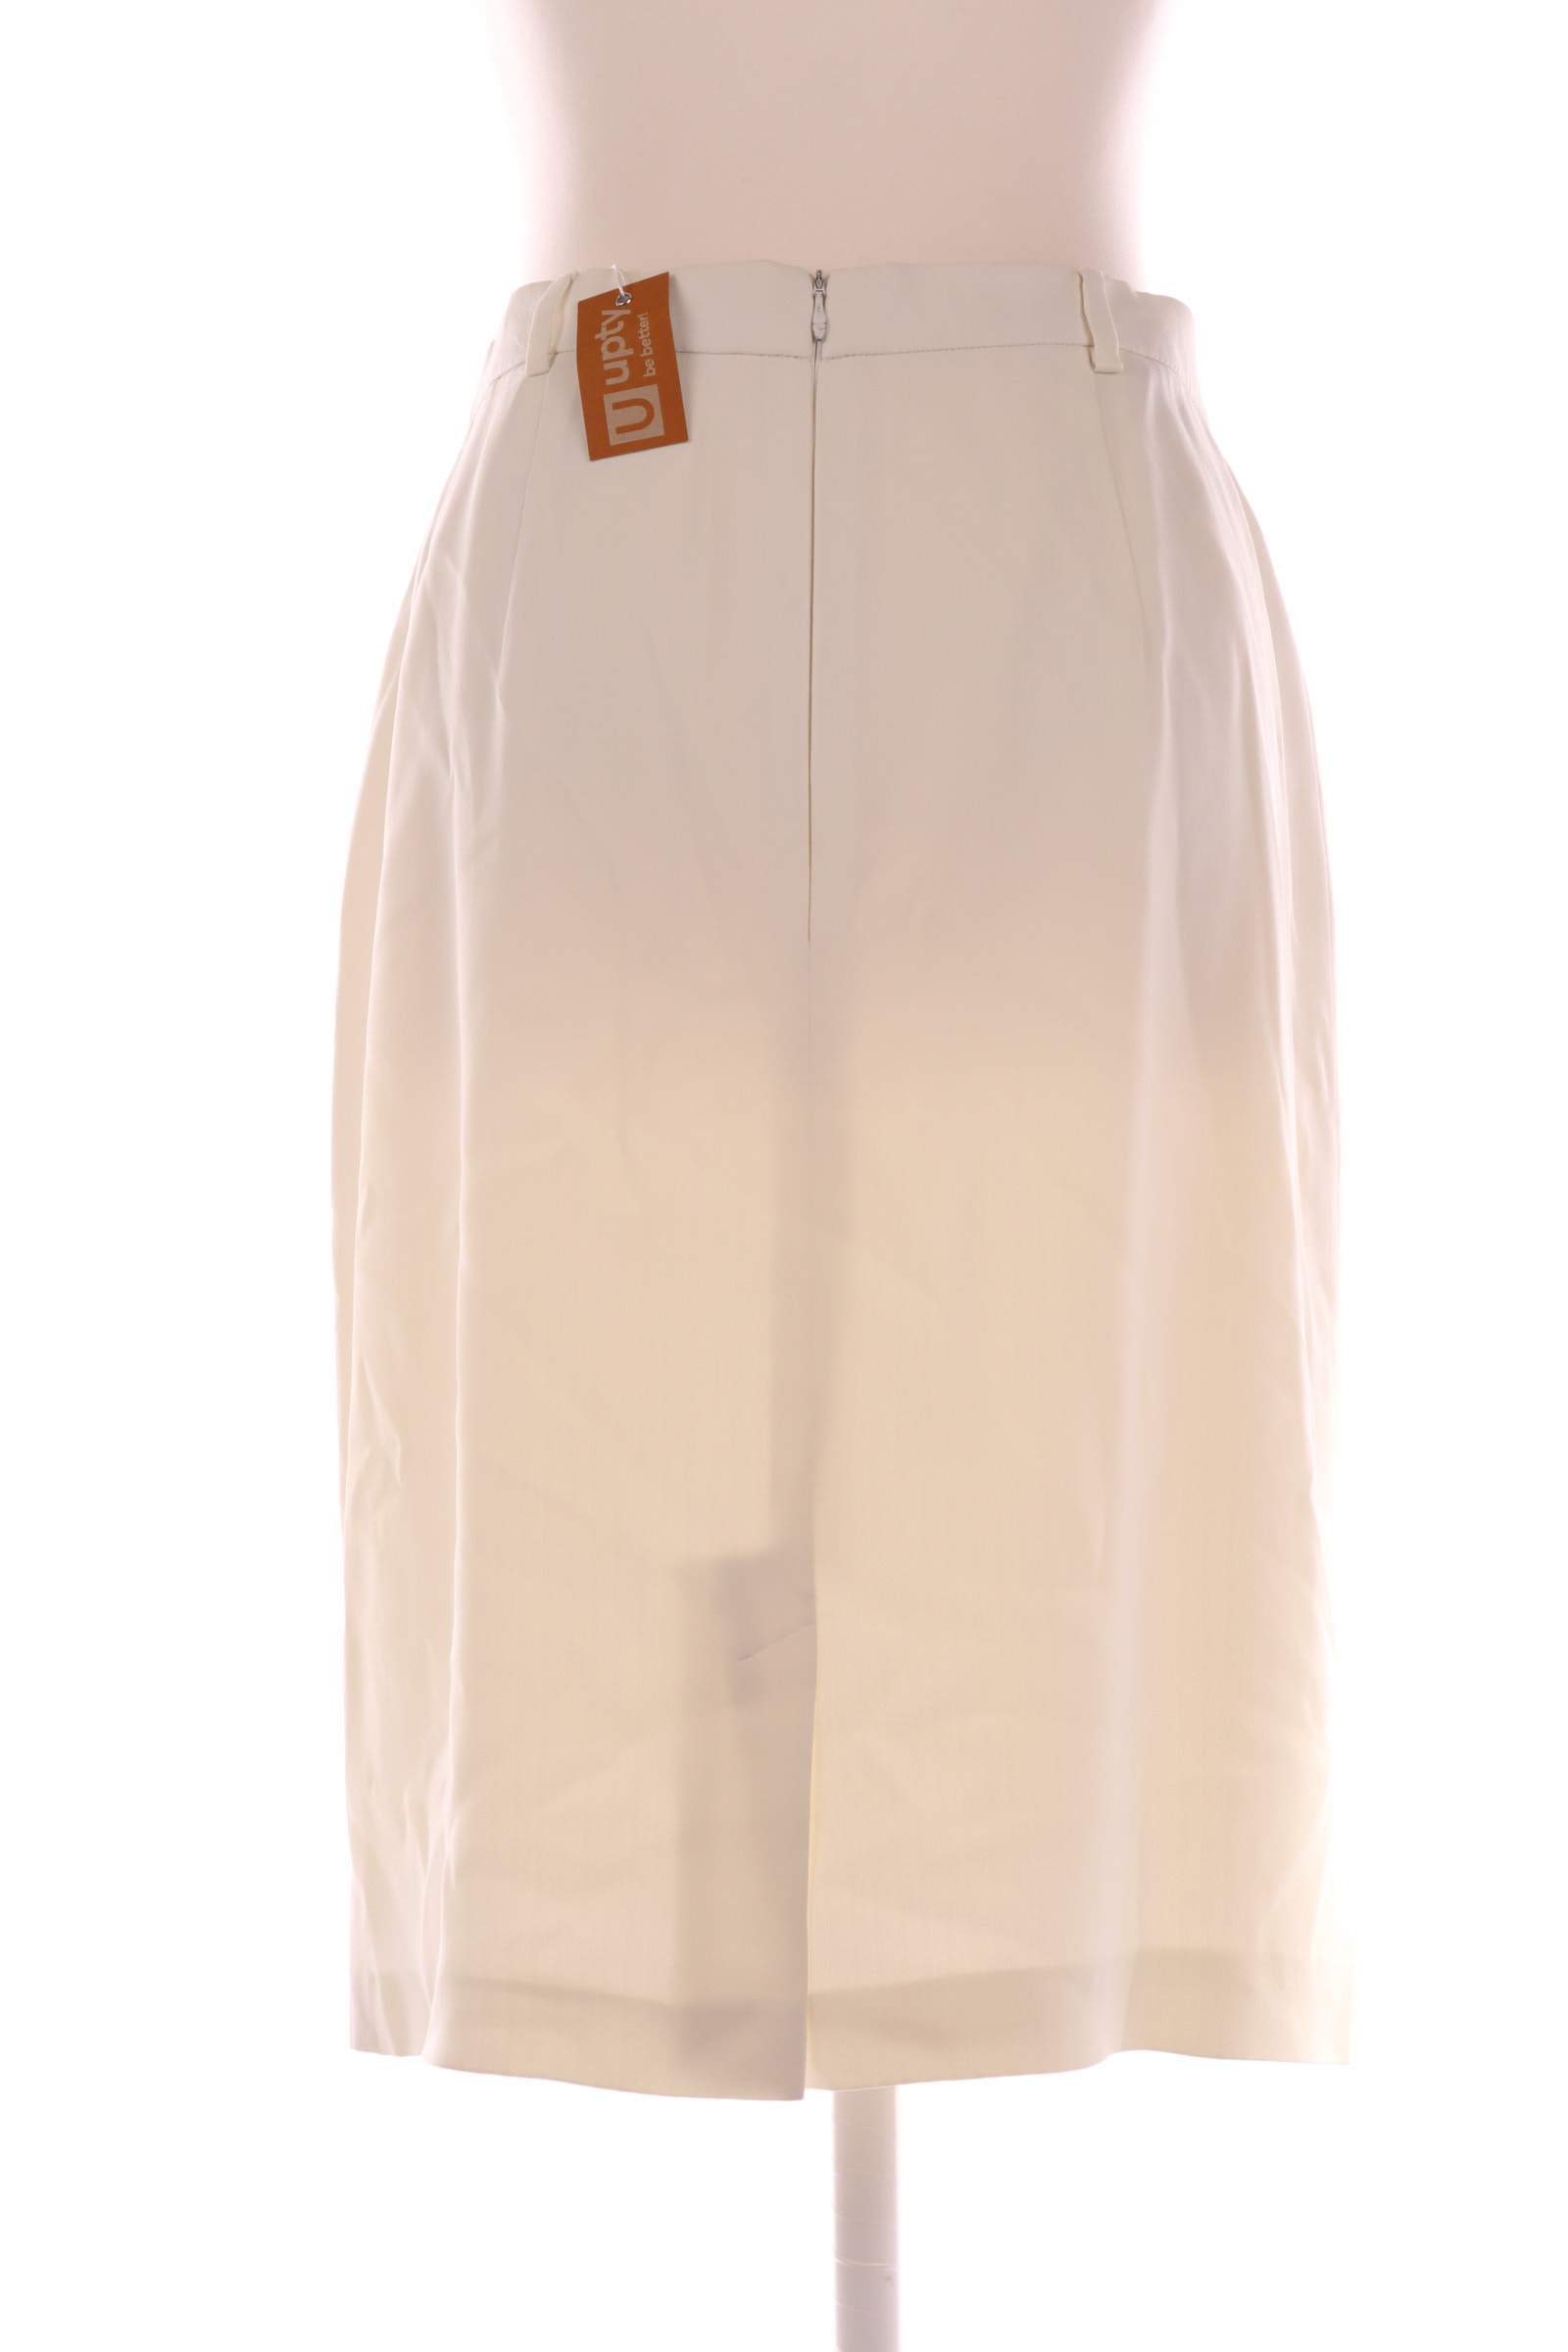 Betty Barclay White Skirt - upty.store